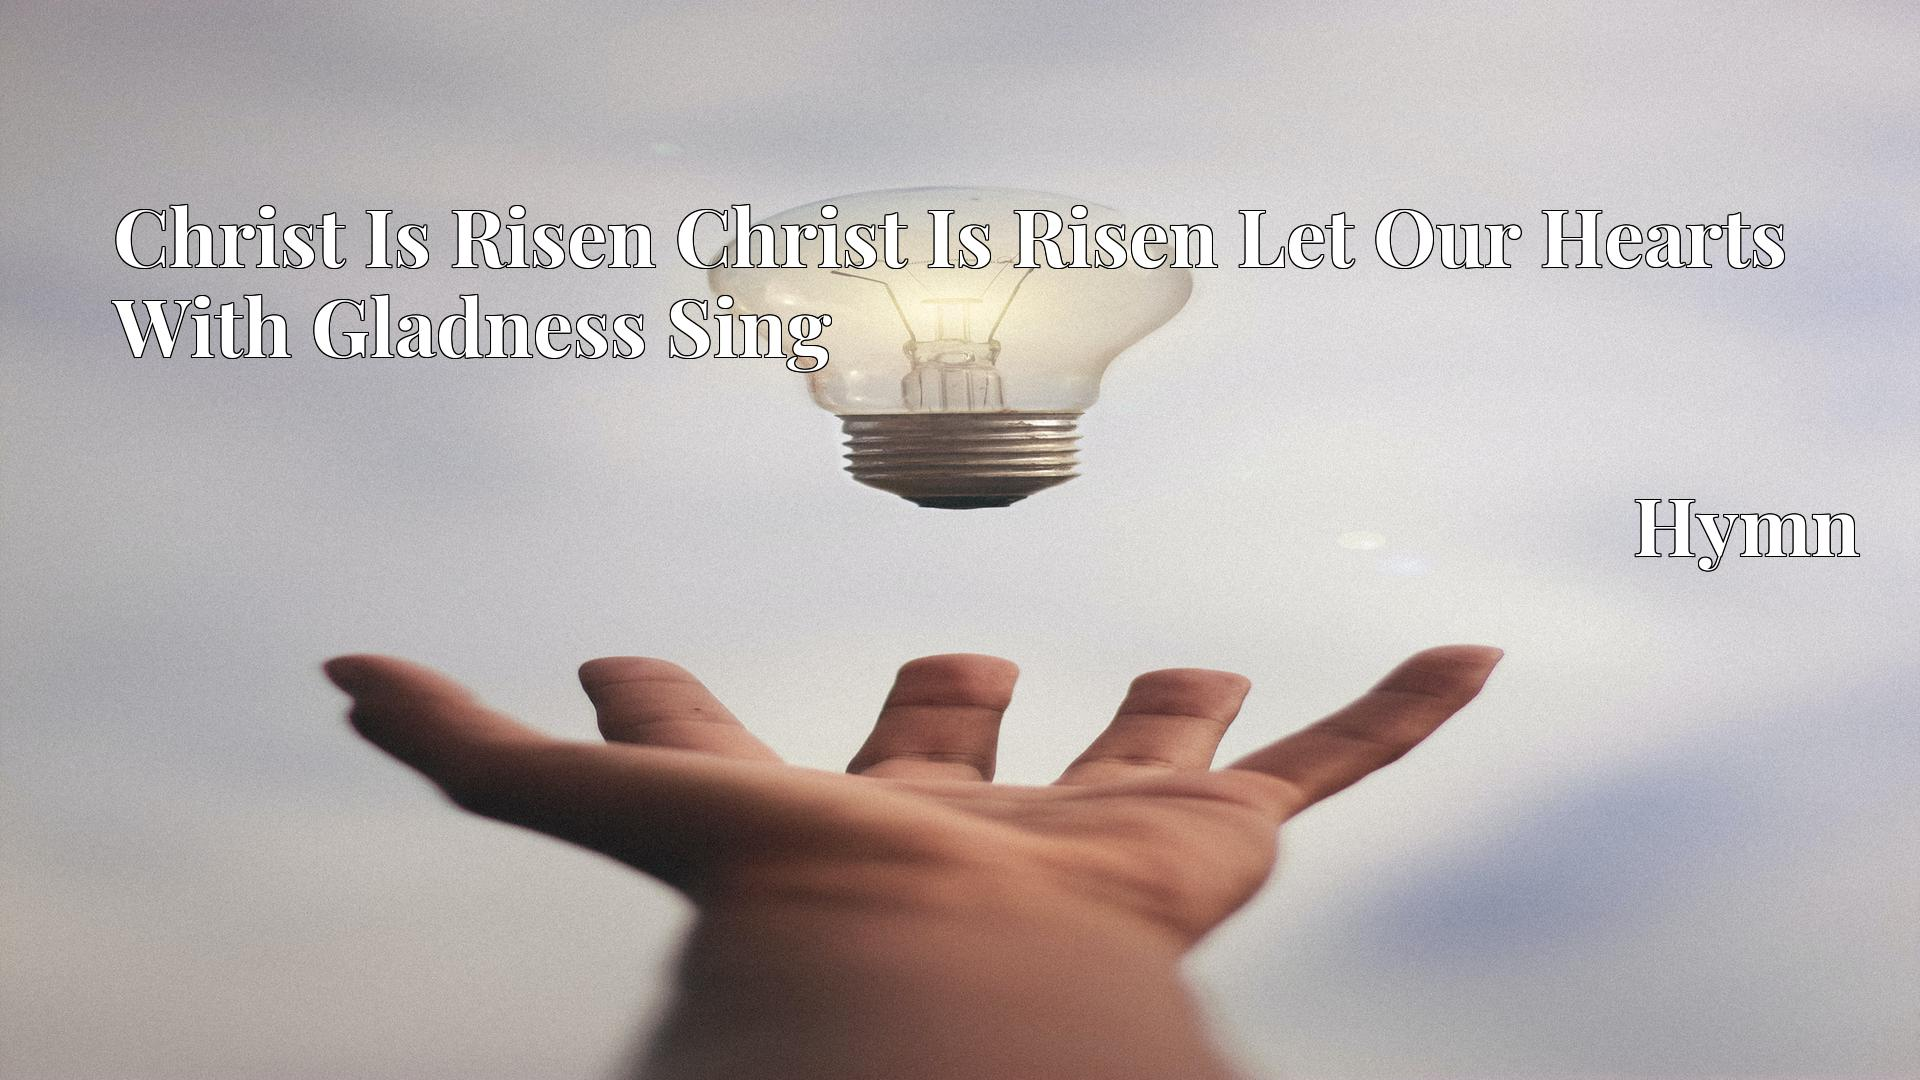 Christ Is Risen Christ Is Risen Let Our Hearts With Gladness Sing - Hymn